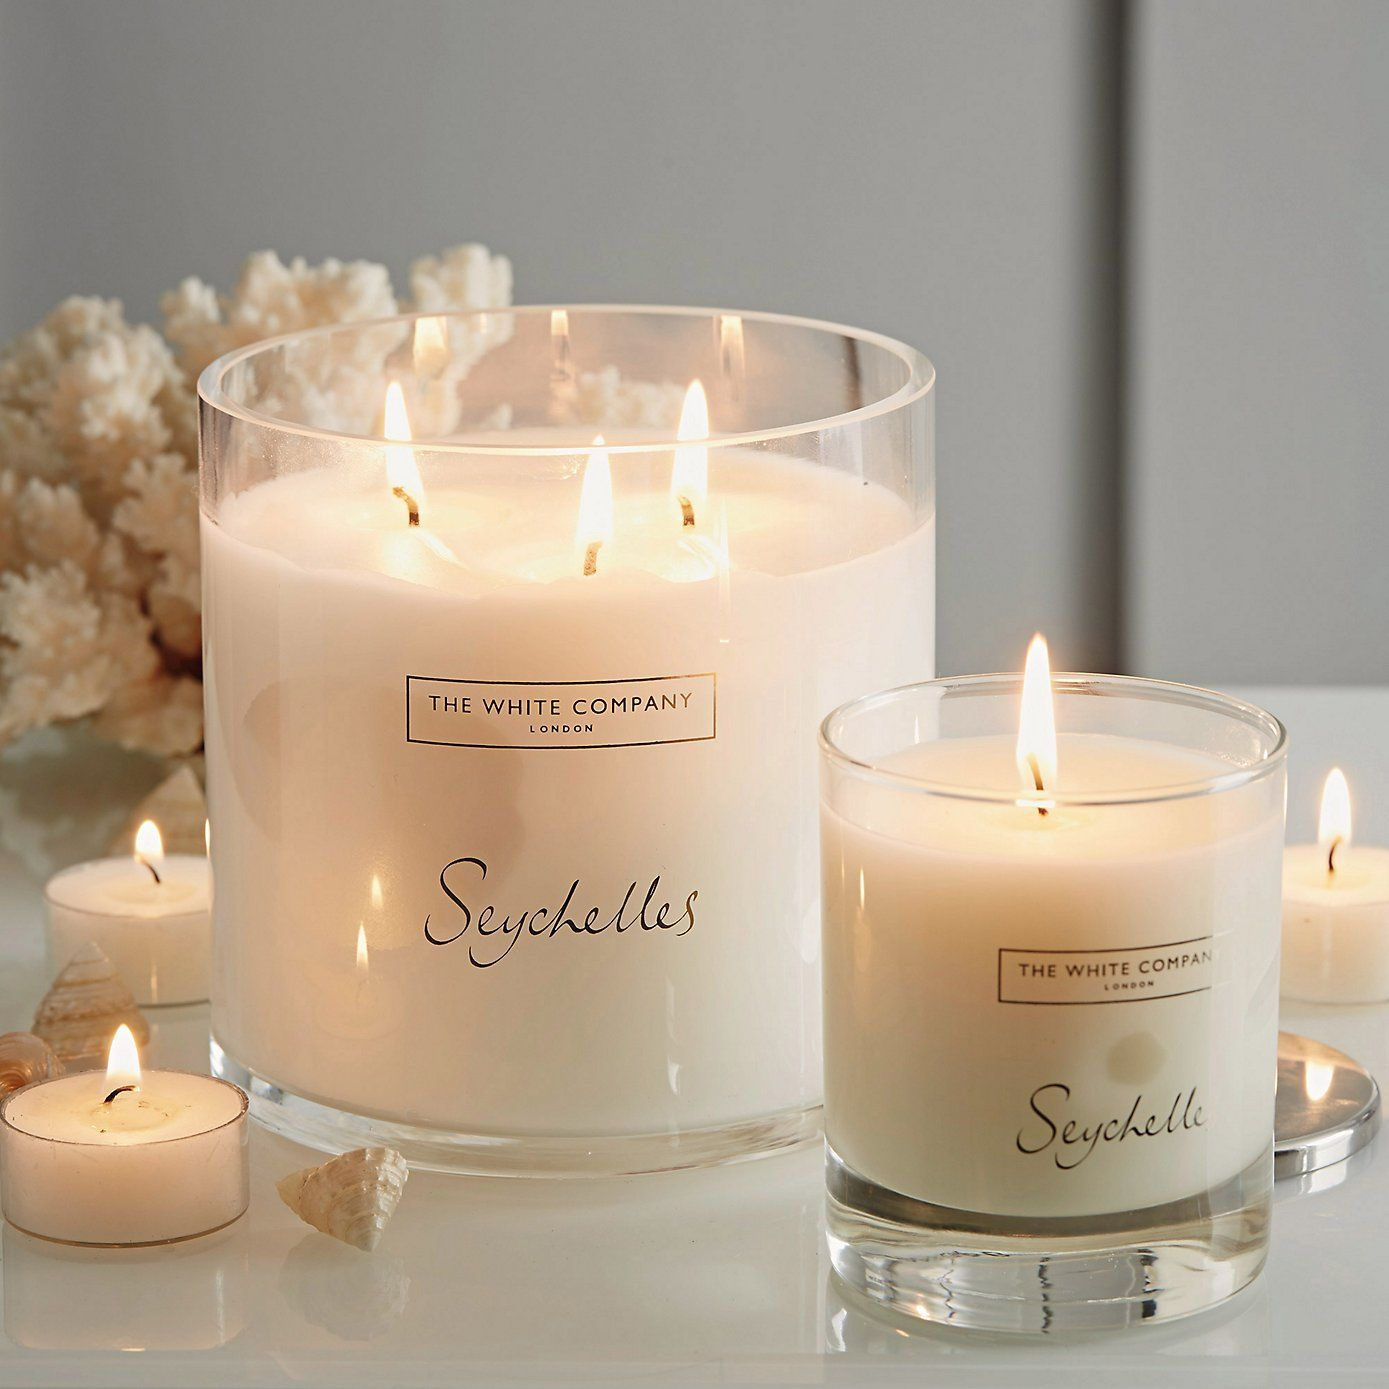 Seychelles Signature Candle Candles The White Company Luxury Candles Candle Aesthetic Soy Wax Candles